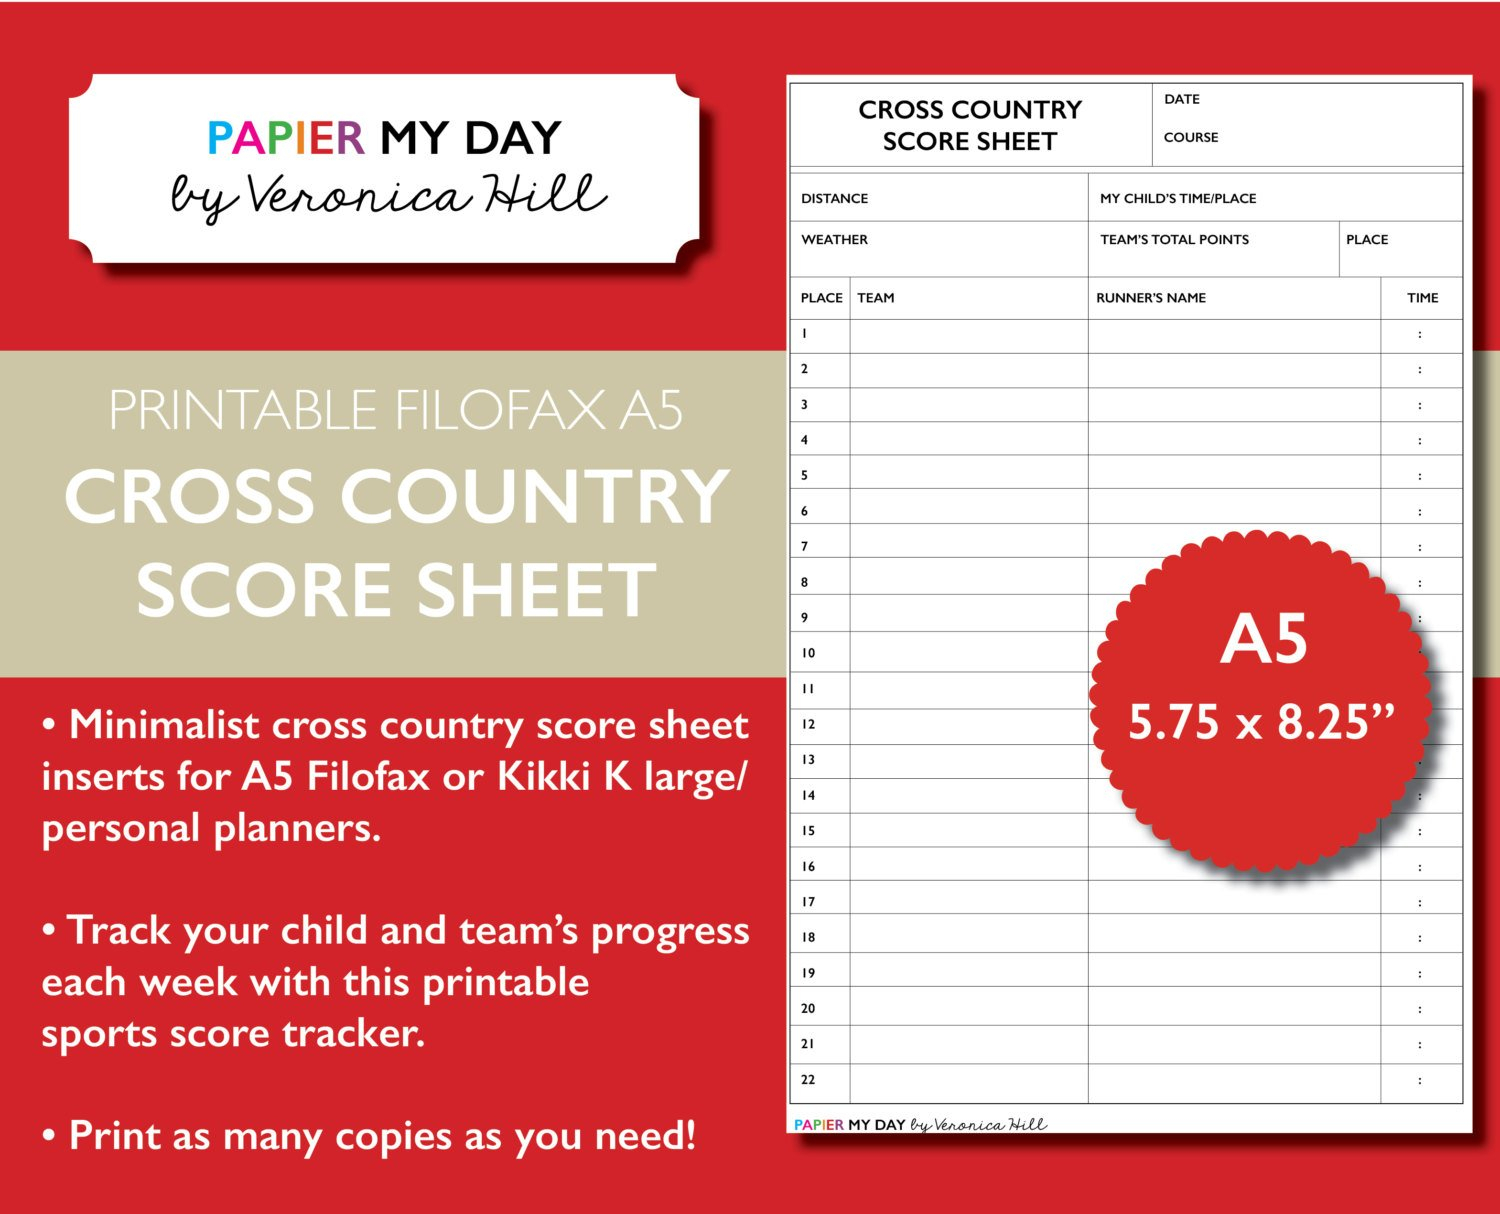 Cross Country Scoring Spreadsheet With Printable A5